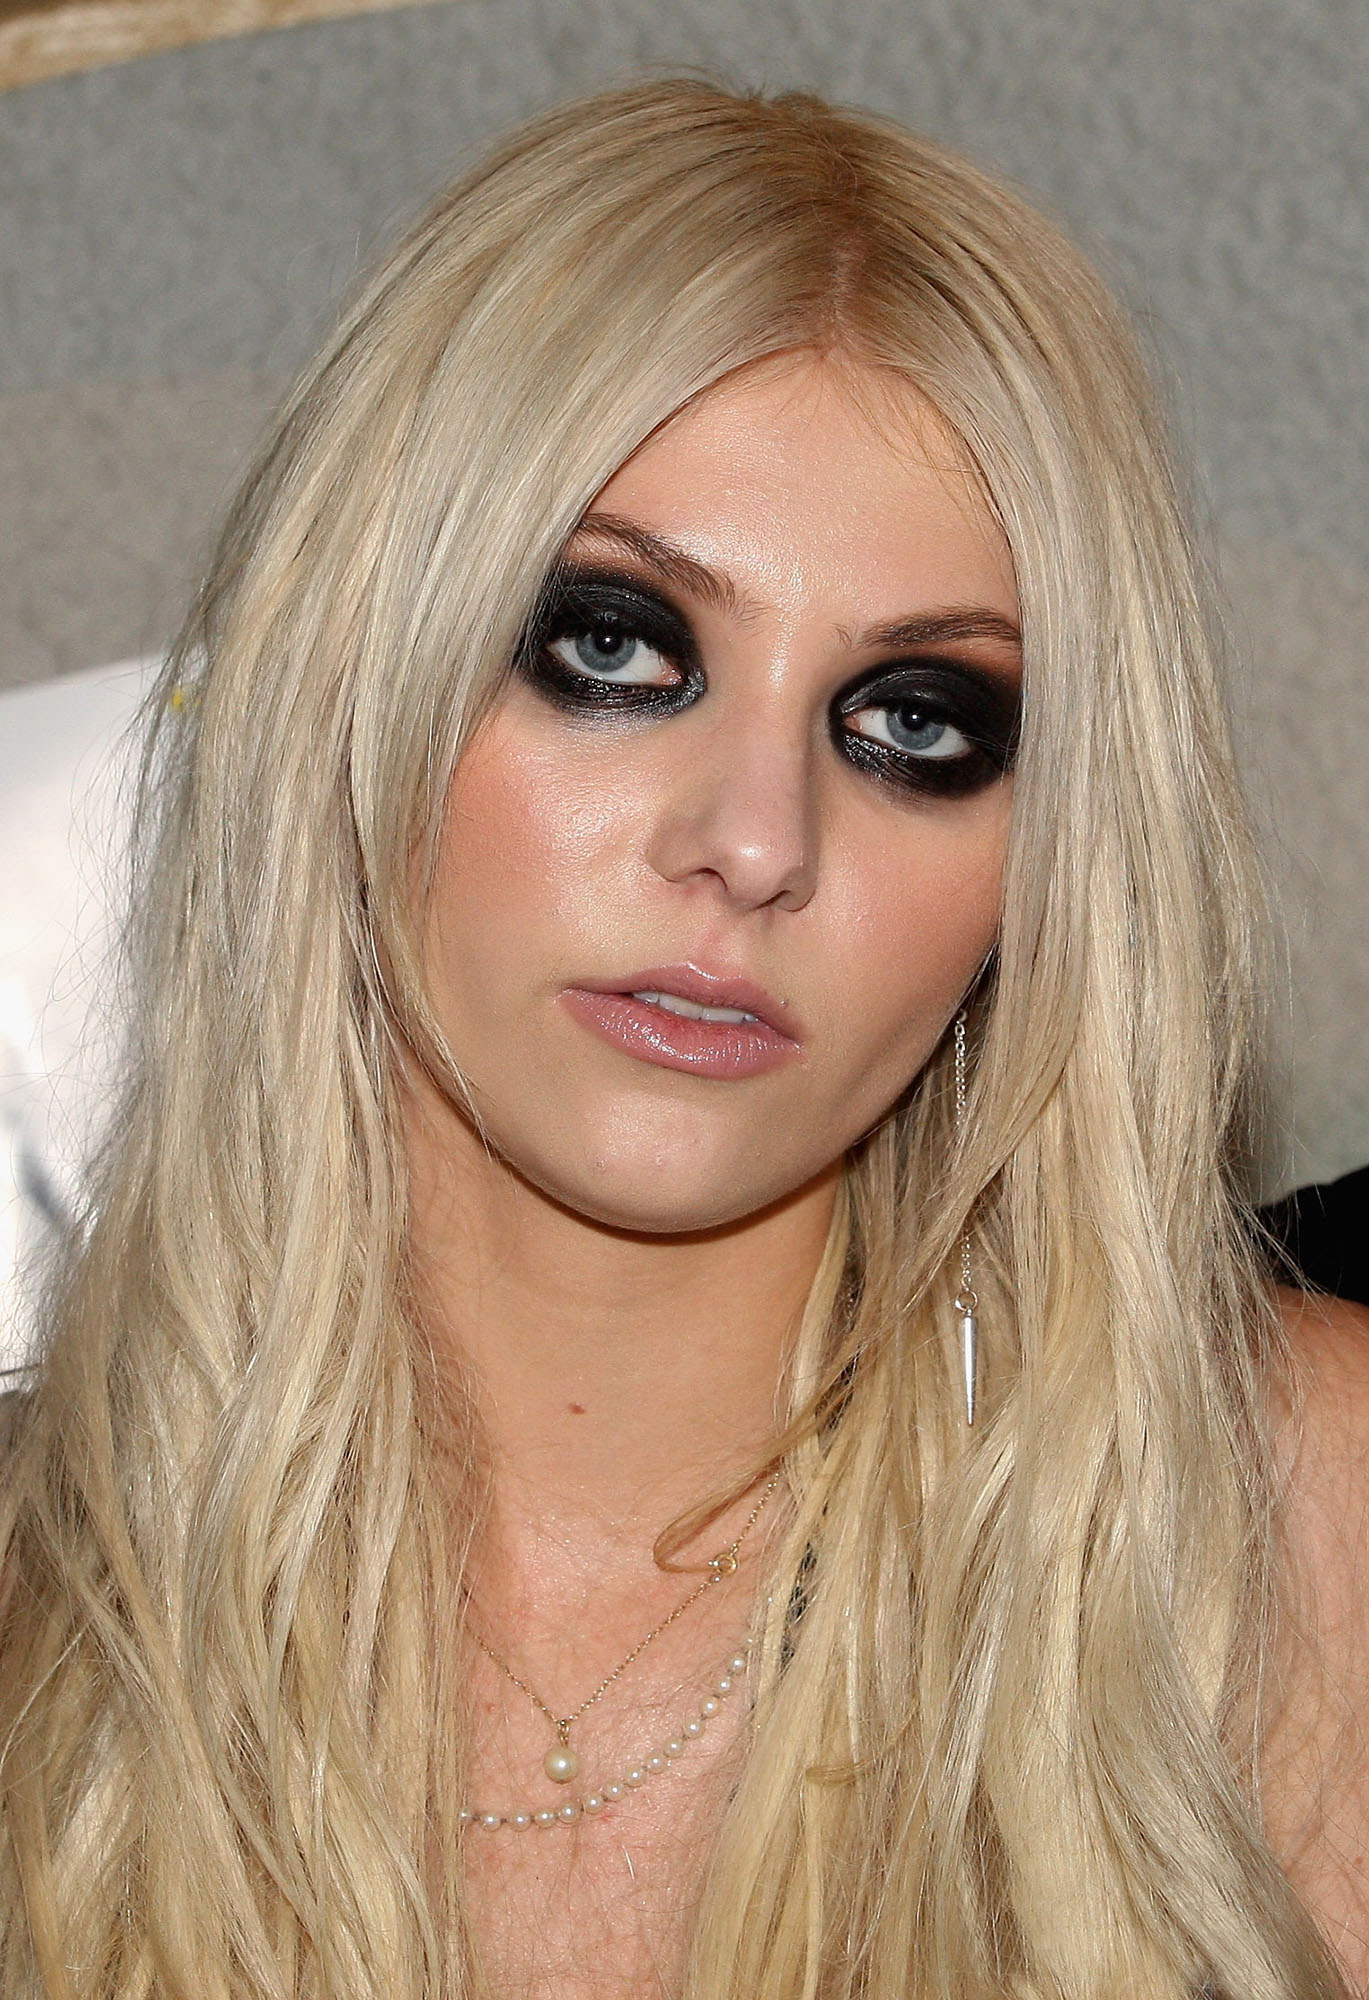 The Pretty Reckless | JustStefanus's Blog Taylor Momsen